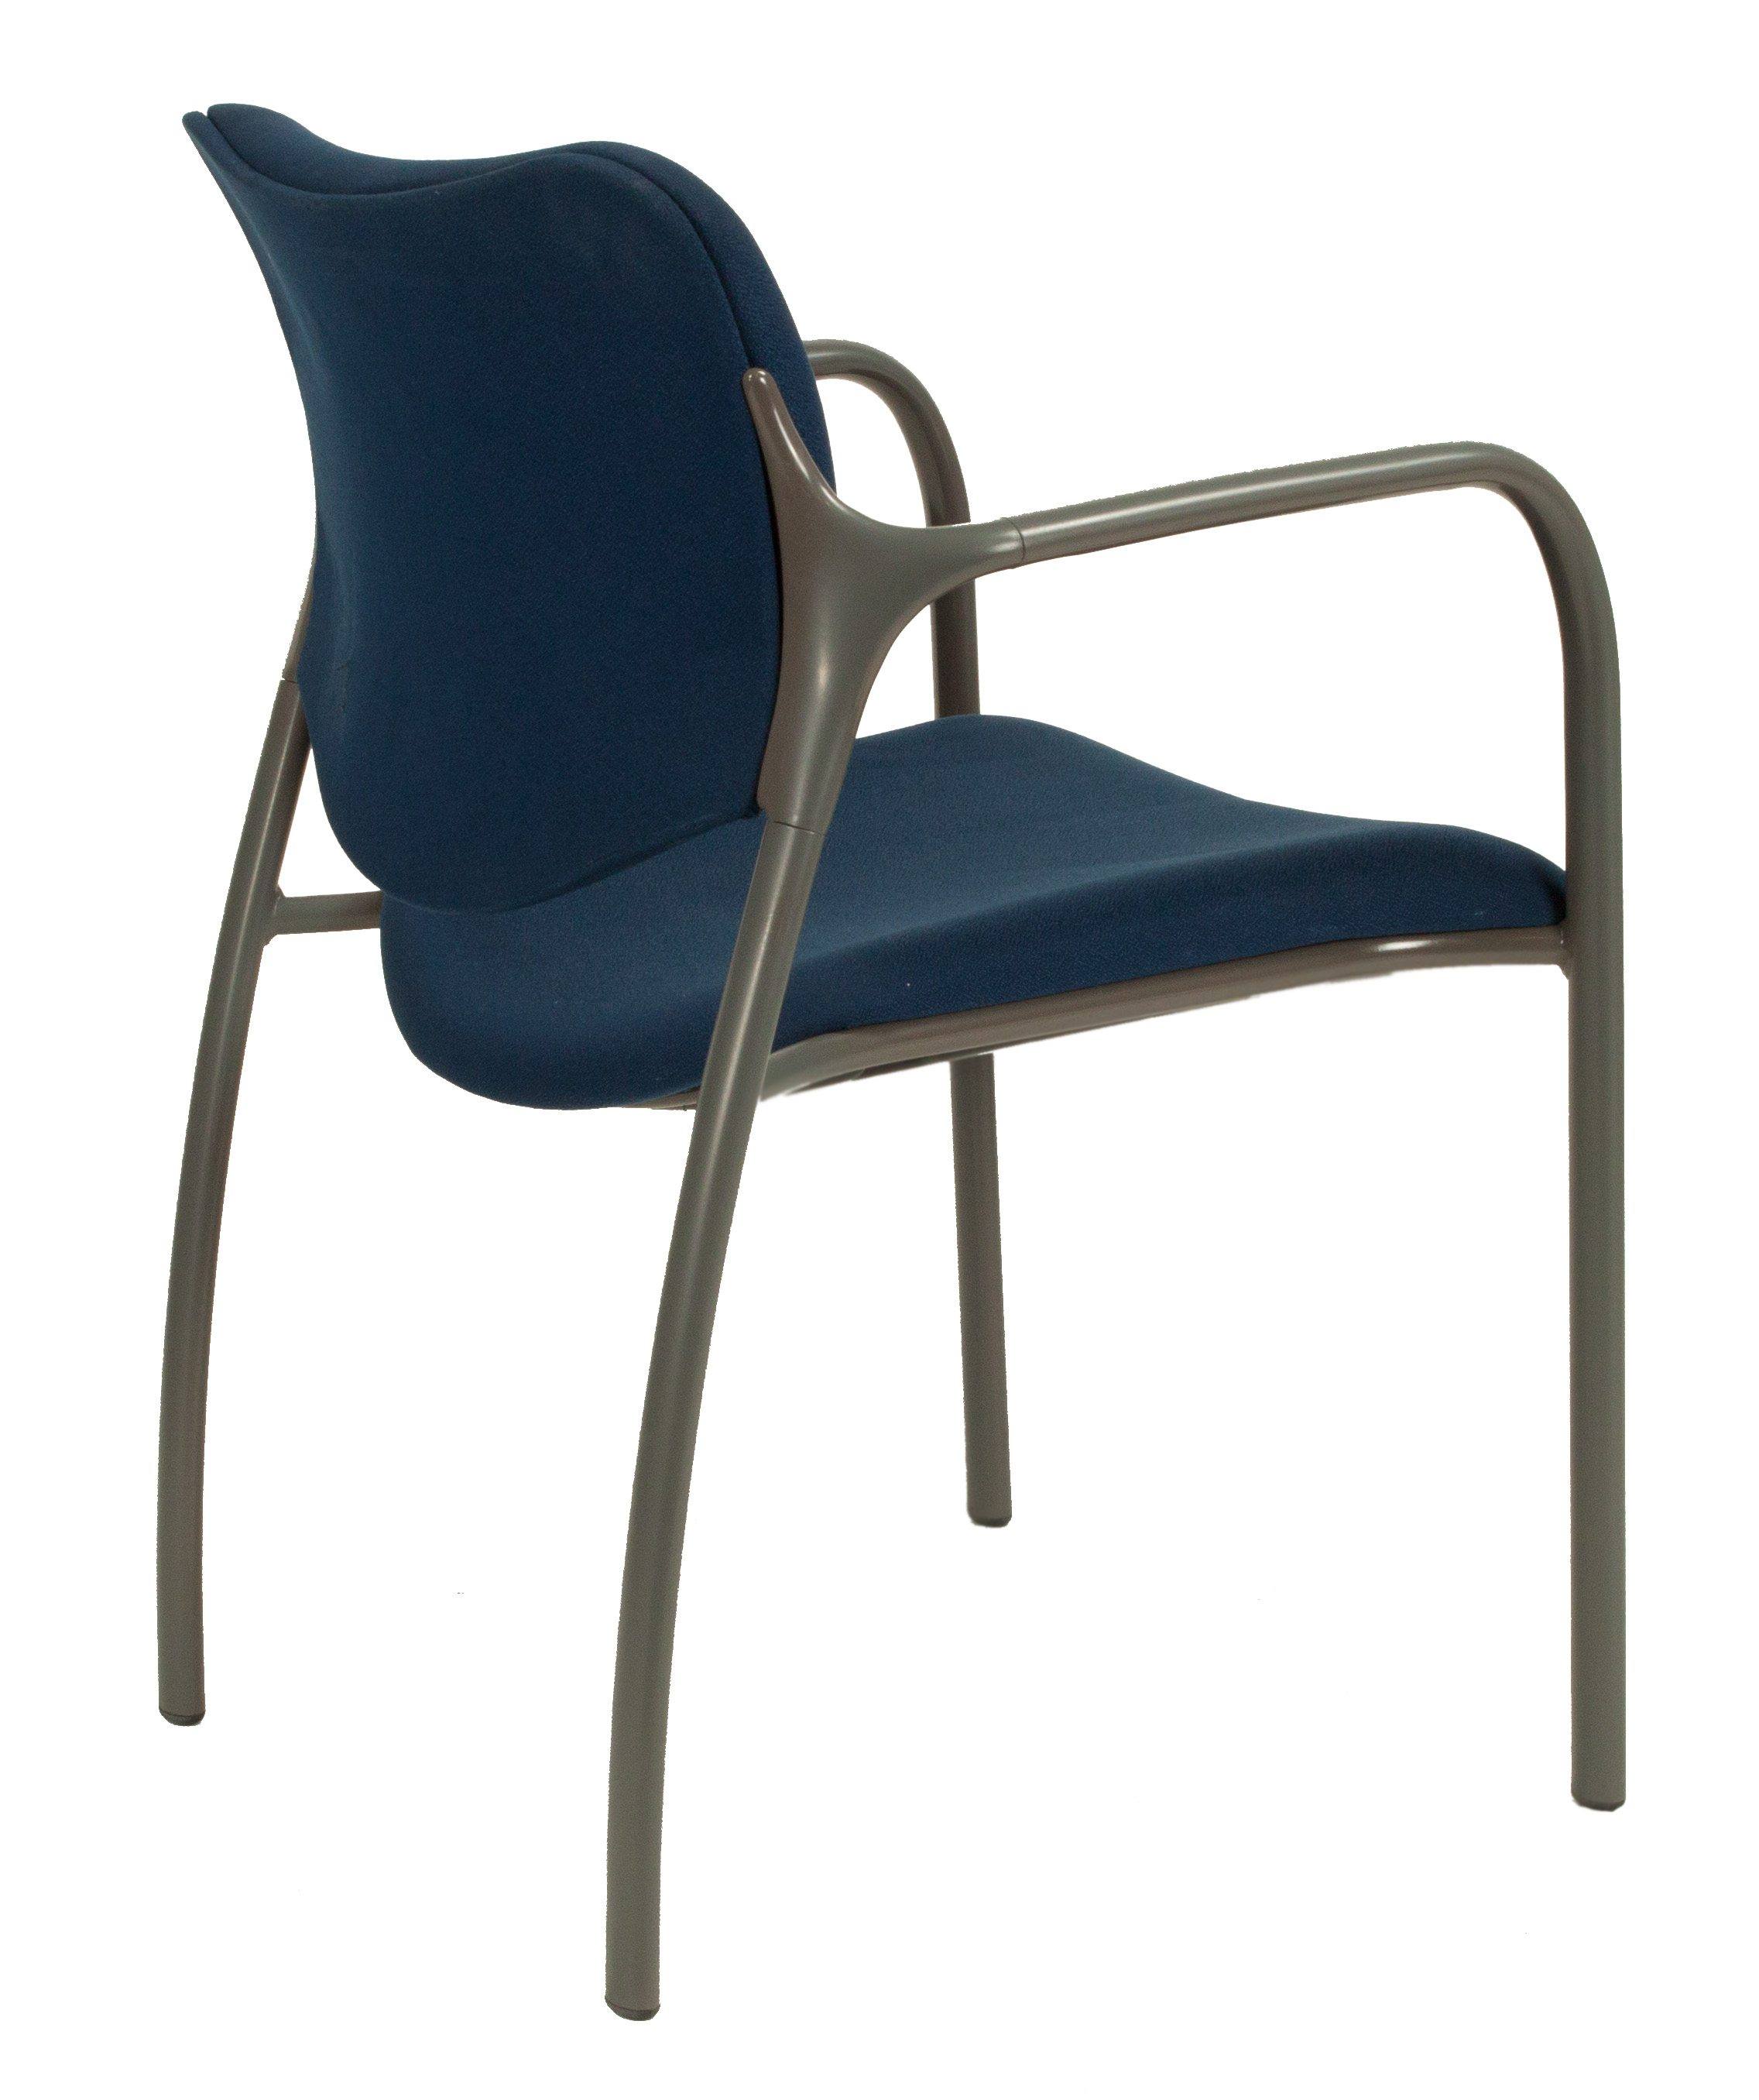 herman miller stacking chairs water ski chair plans used aside blue national